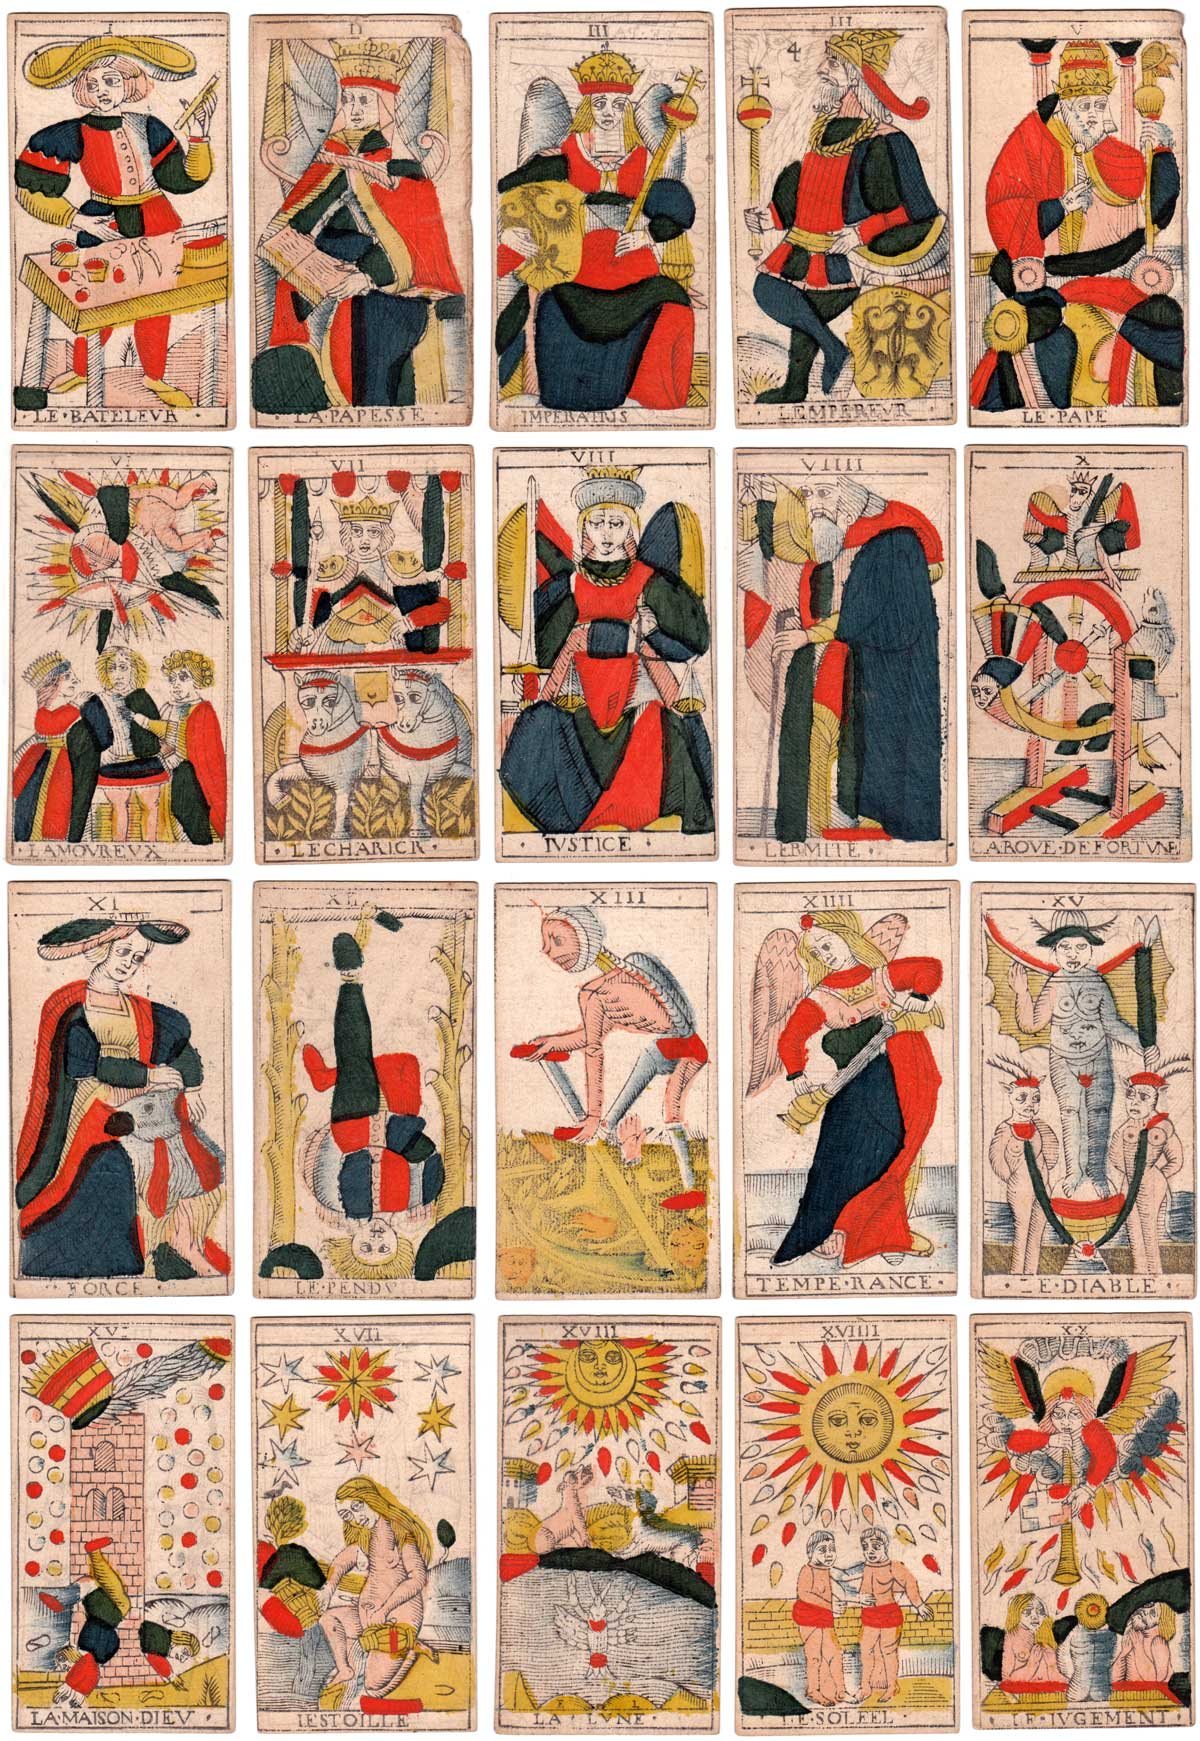 Marseille Tarot Trump cards by Charles Cheminade of Grenoble, France, early 18th century